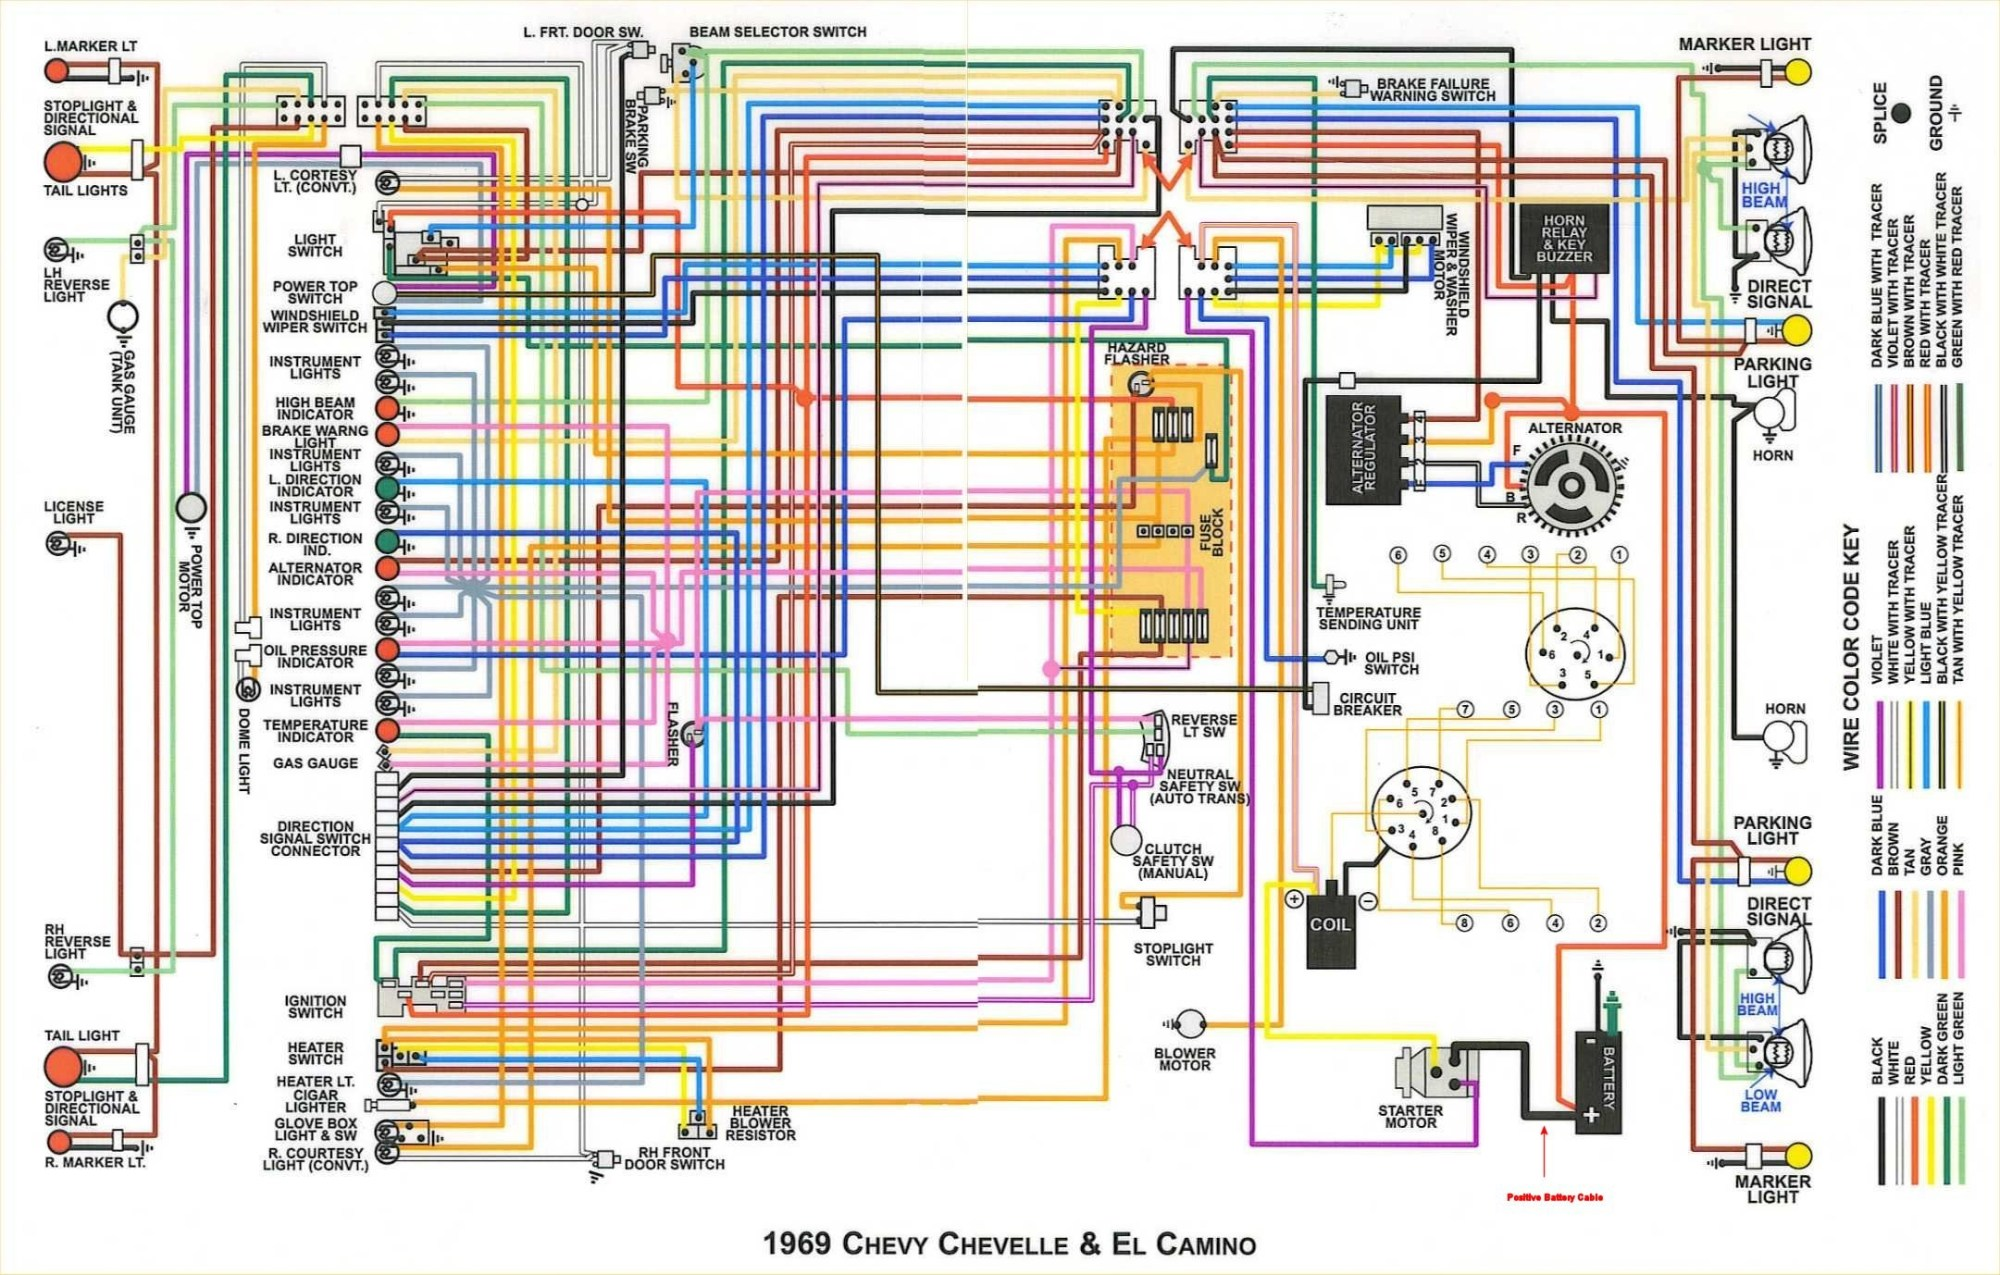 hight resolution of 1967 chevy impala gas gauge wiring diagram wiring diagram operations 1966 chevelle fuel gauge wiring diagram